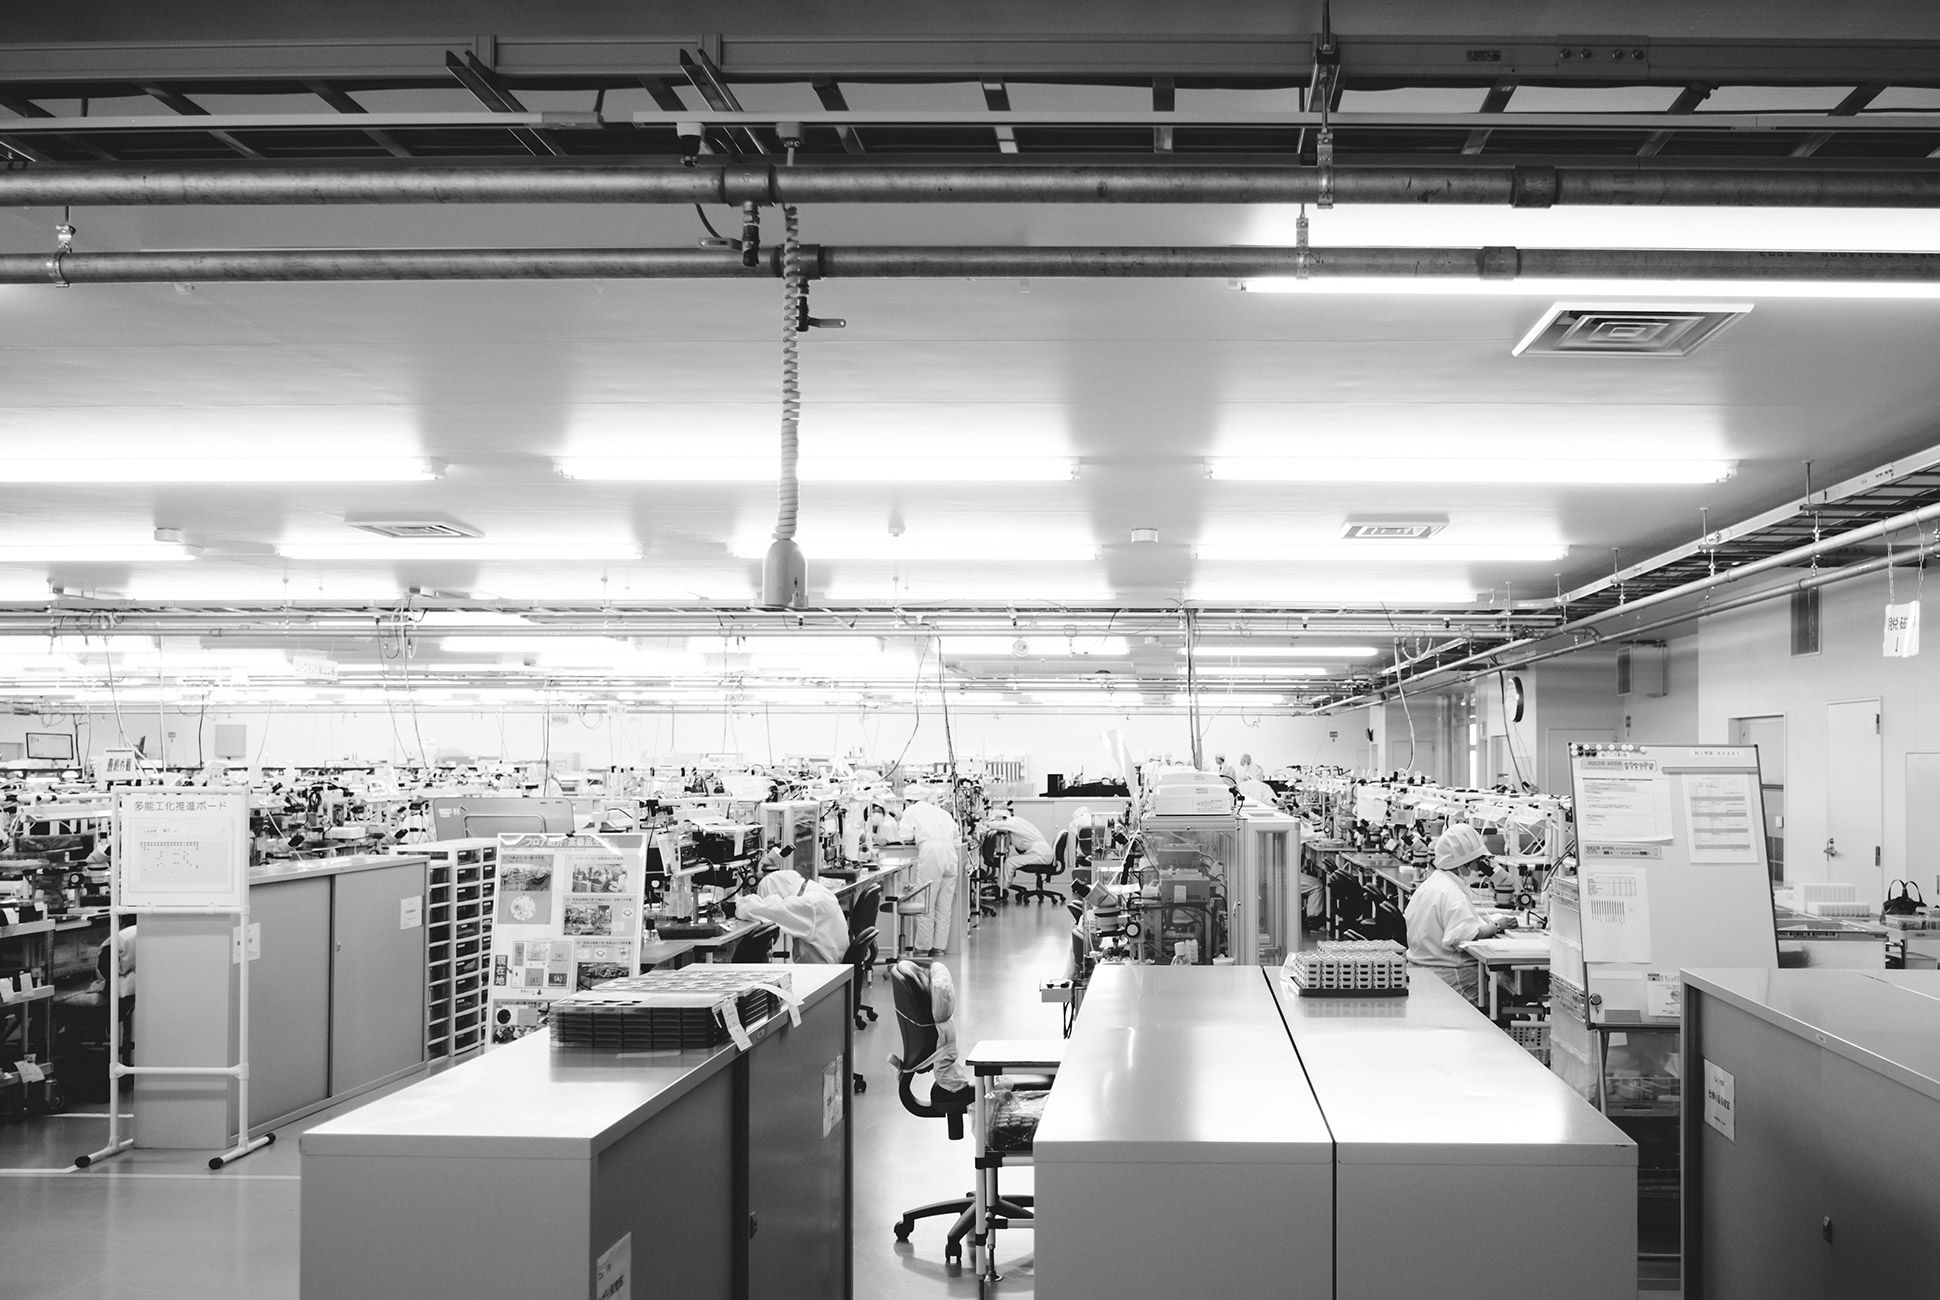 Citizen's watches are made using both human and robotic assembly. The factory is hushed and laboratory-like. Workers assemble in sync with robotic equipment.